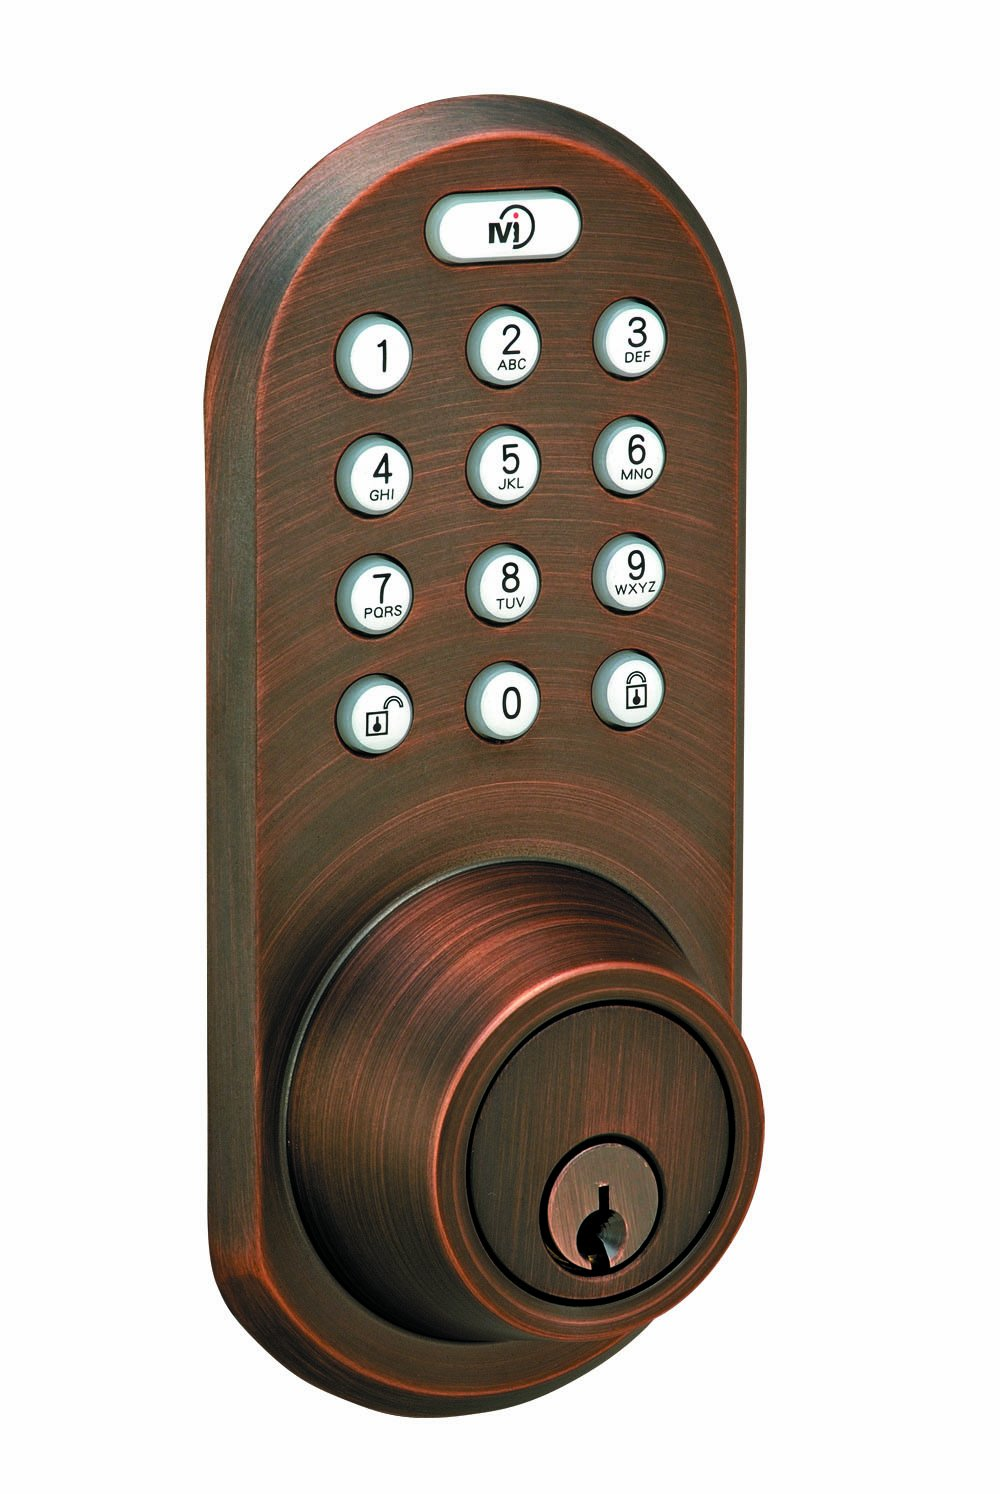 MORNING INDUSTRY INC QF-01OB 3-In-1 Remote Control & Touchpad Dead Bolt, Oil Rubbed Bronze by Morning Industry